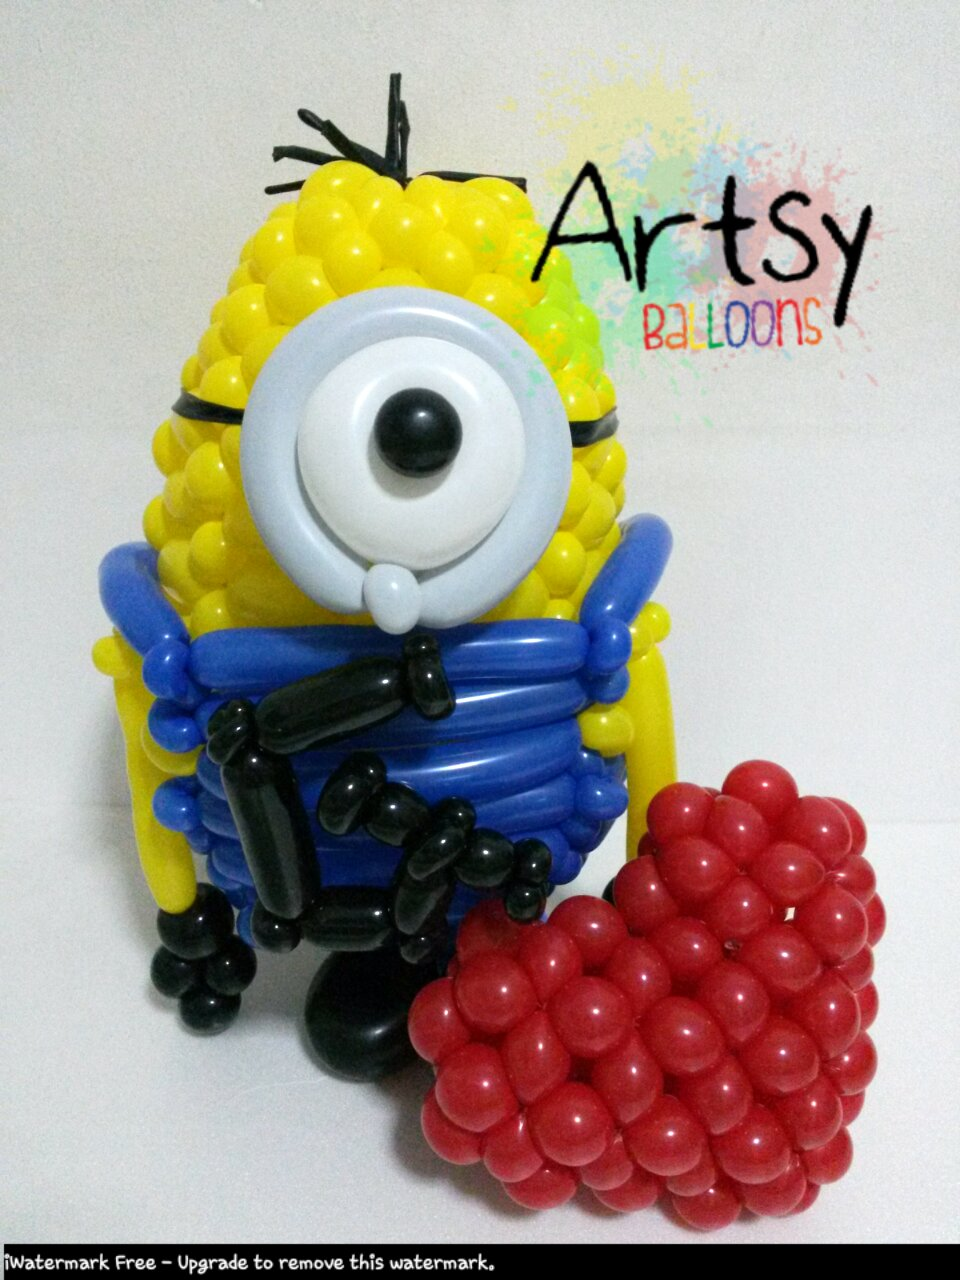 , Tried doing a very advance balloon minion from Despicable Me!, Singapore Balloon Decoration Services - Balloon Workshop and Balloon Sculpting